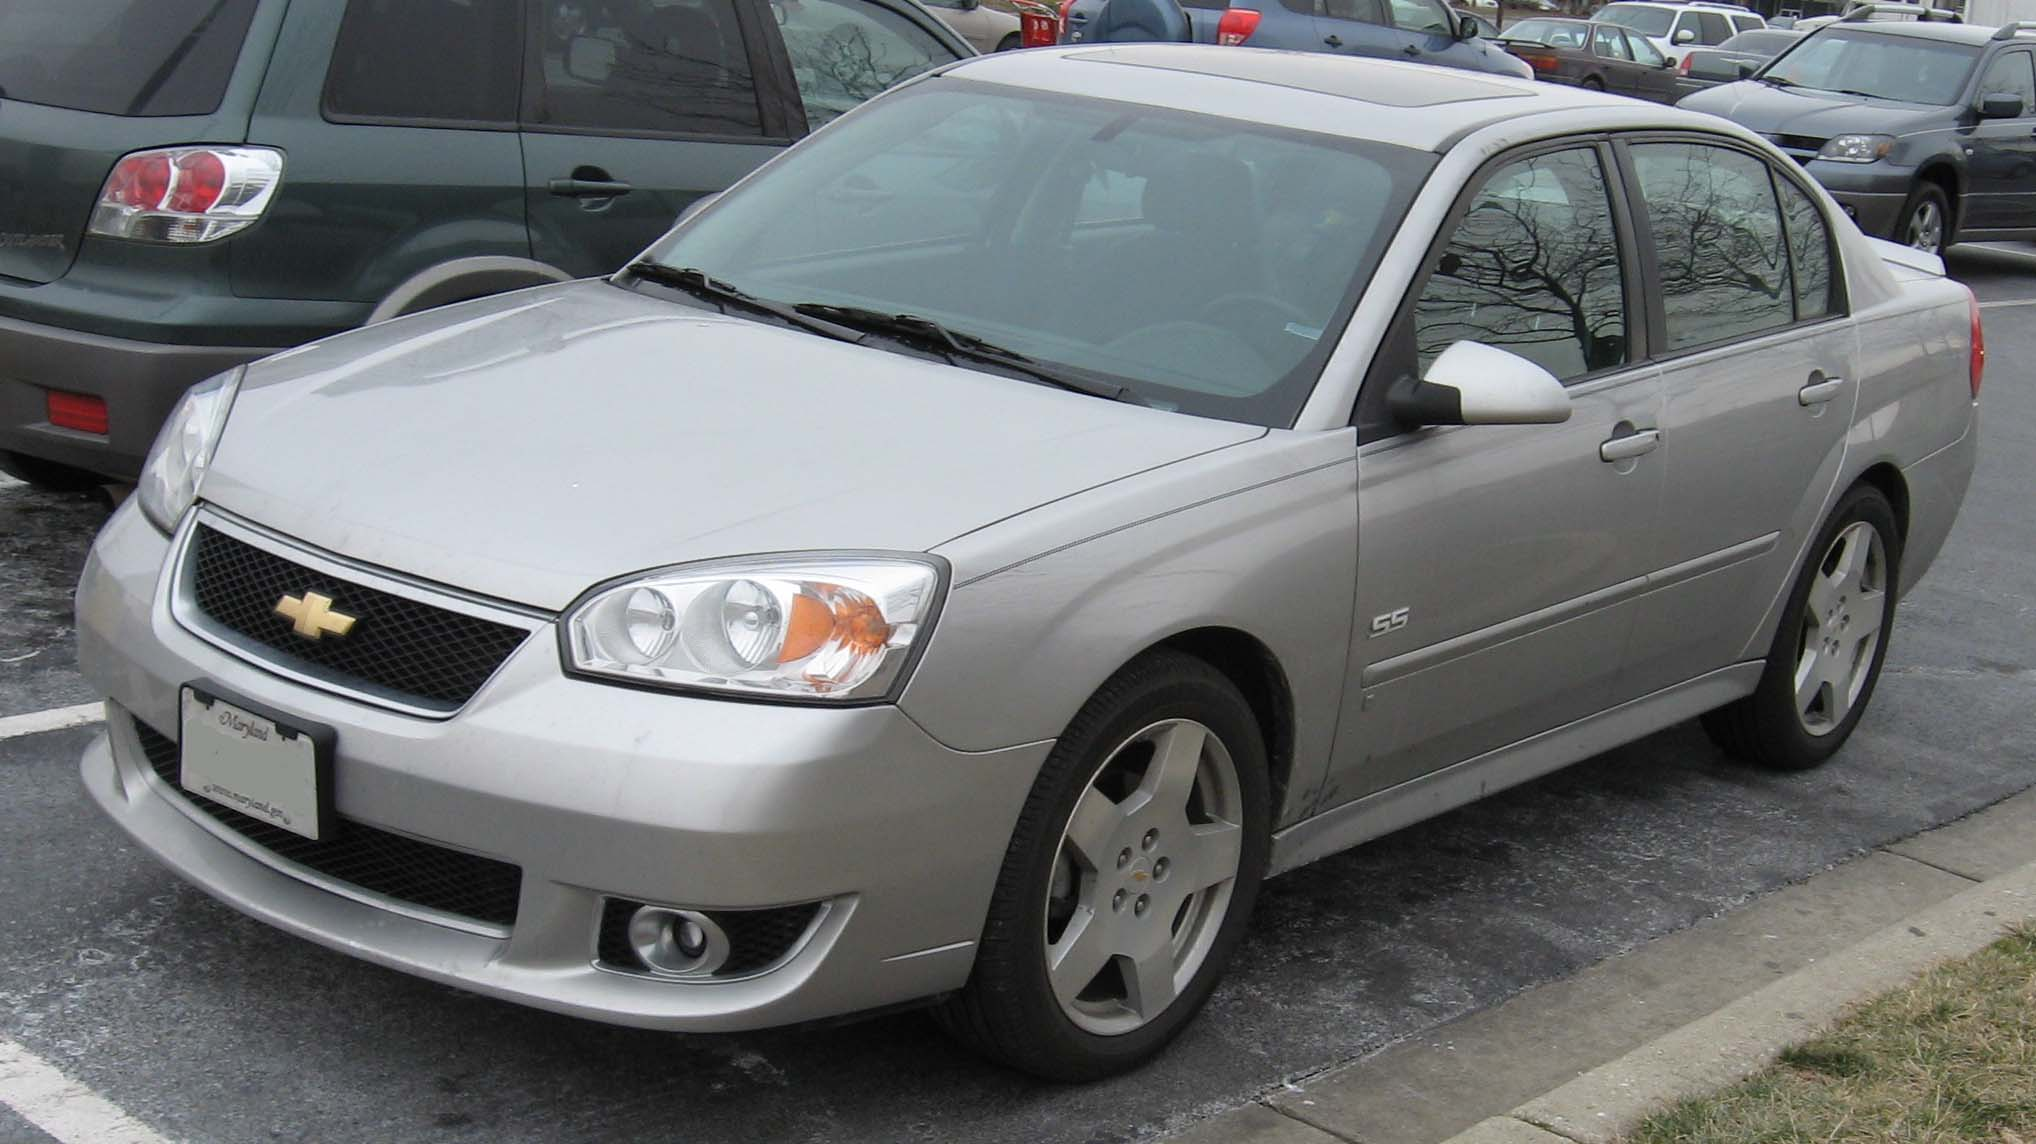 2007 Chevrolet Malibu Information And Photos Momentcar